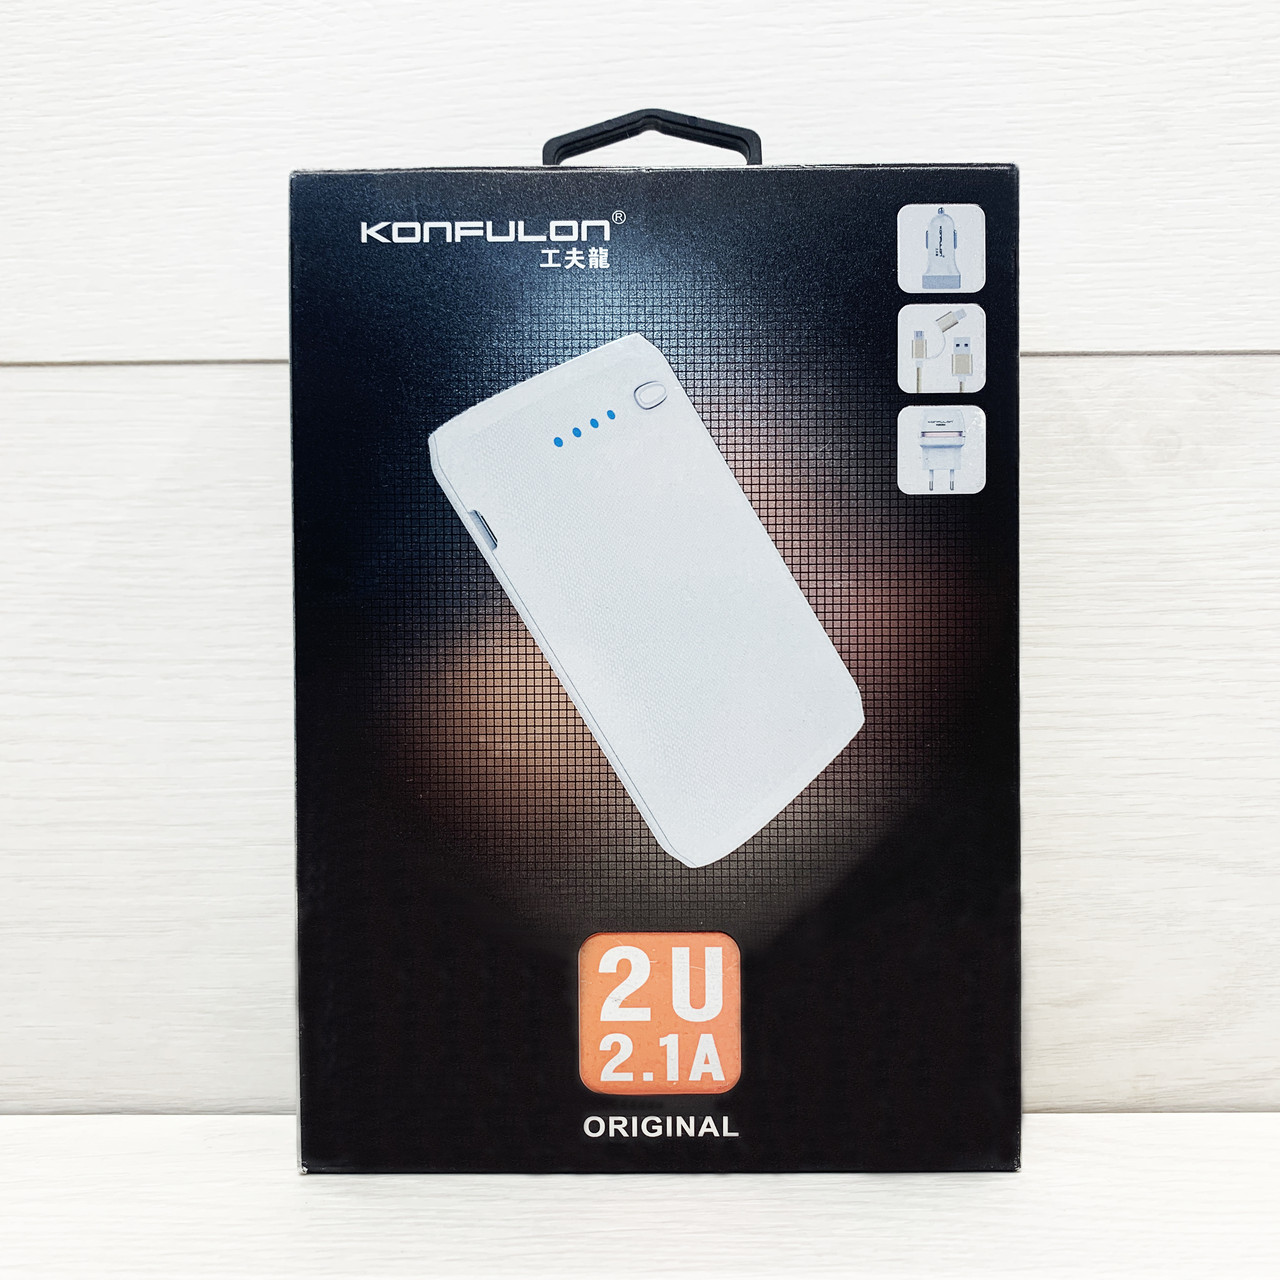 PowerBank Konfulon Y1301 4 в 1 (White)